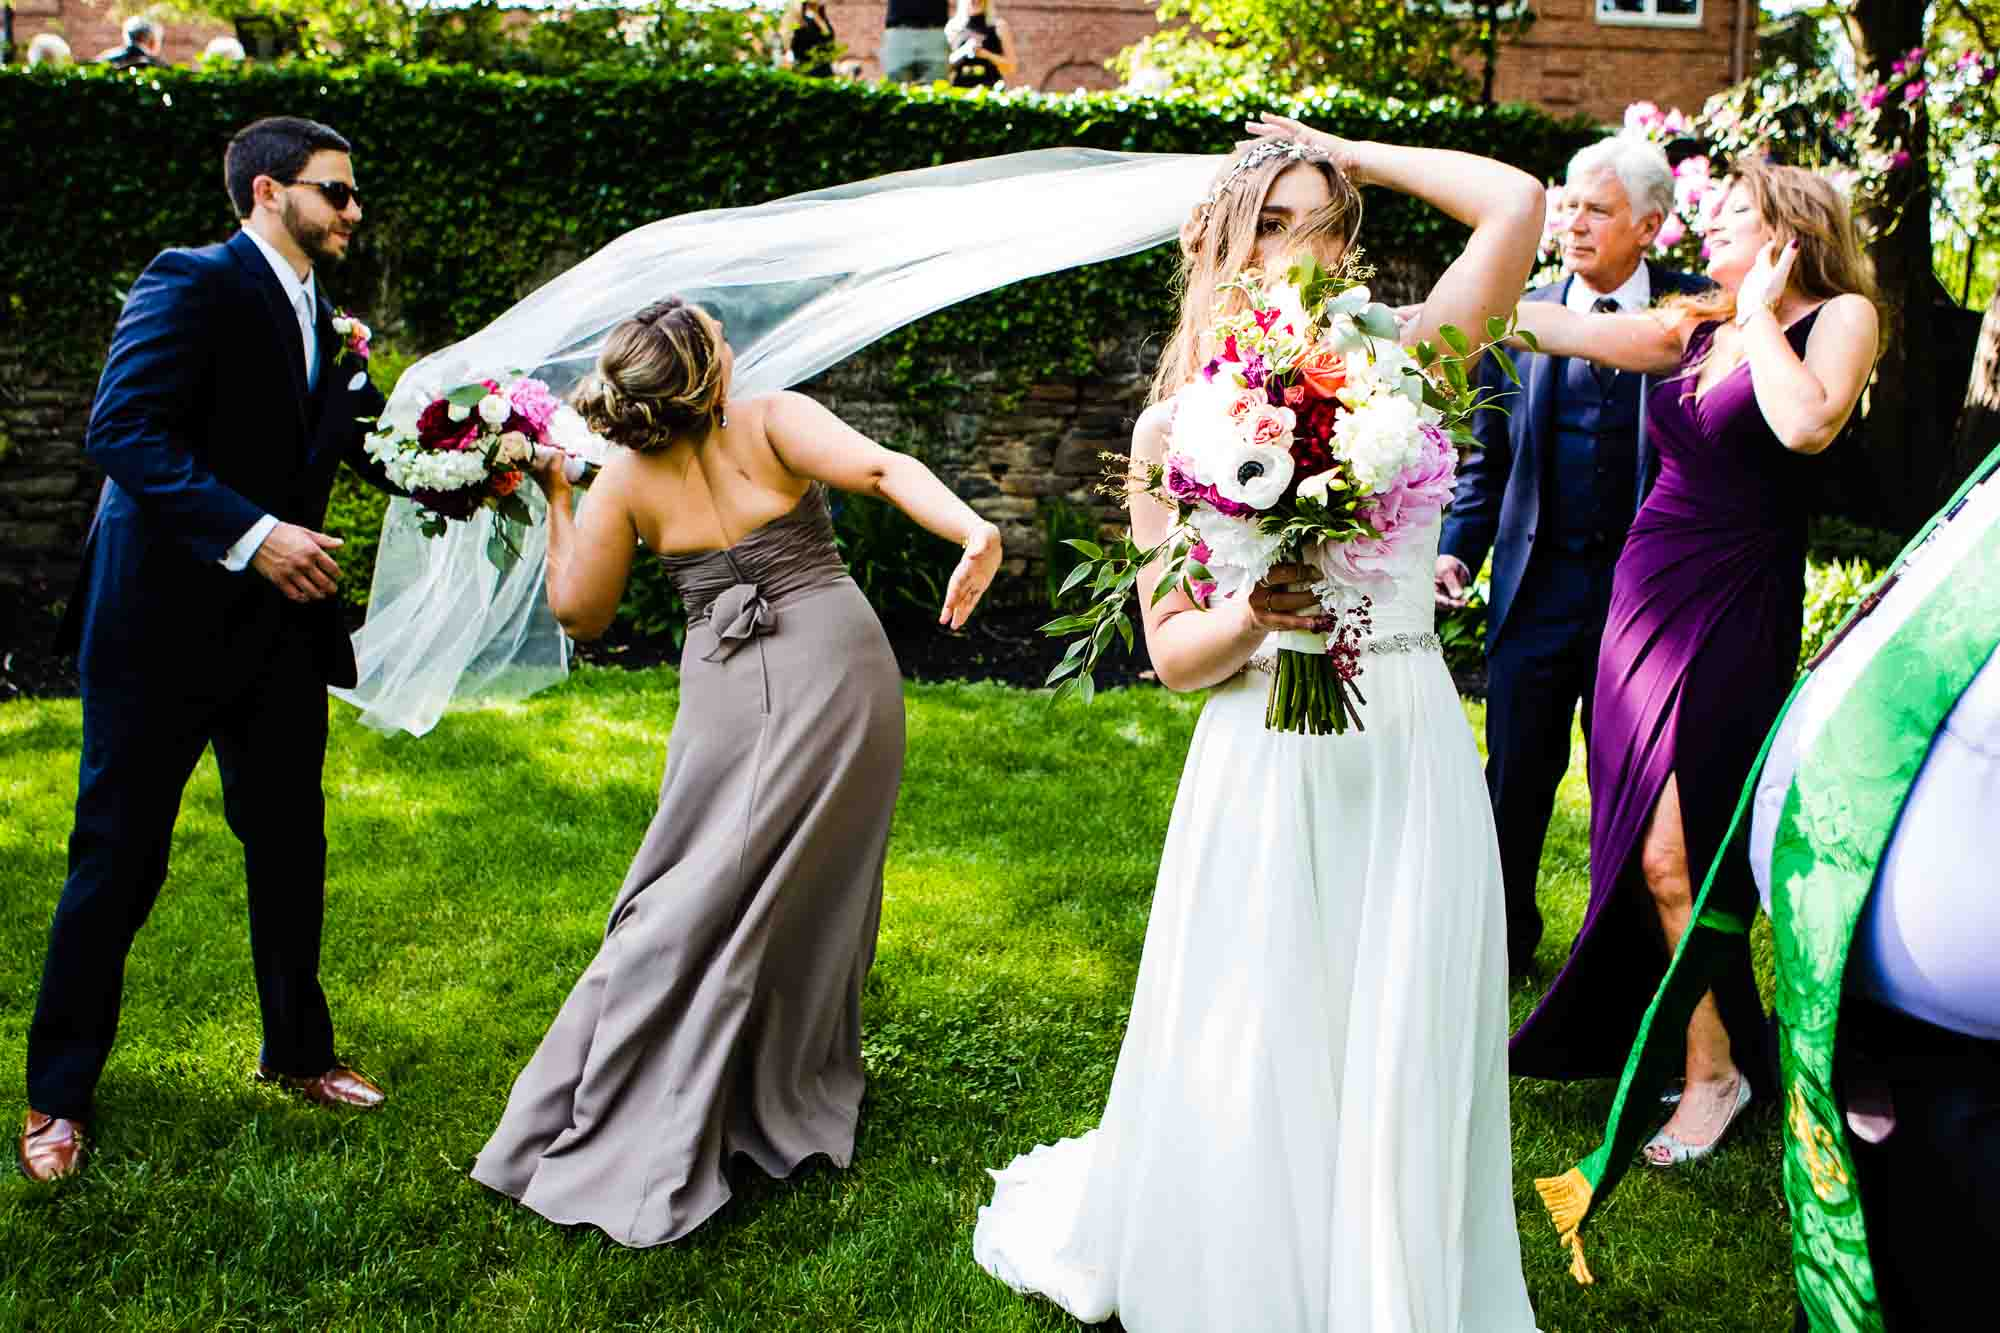 bride's veil flies in the wind and bridesmaid runs into it in awkward movement, while wedding guests look on